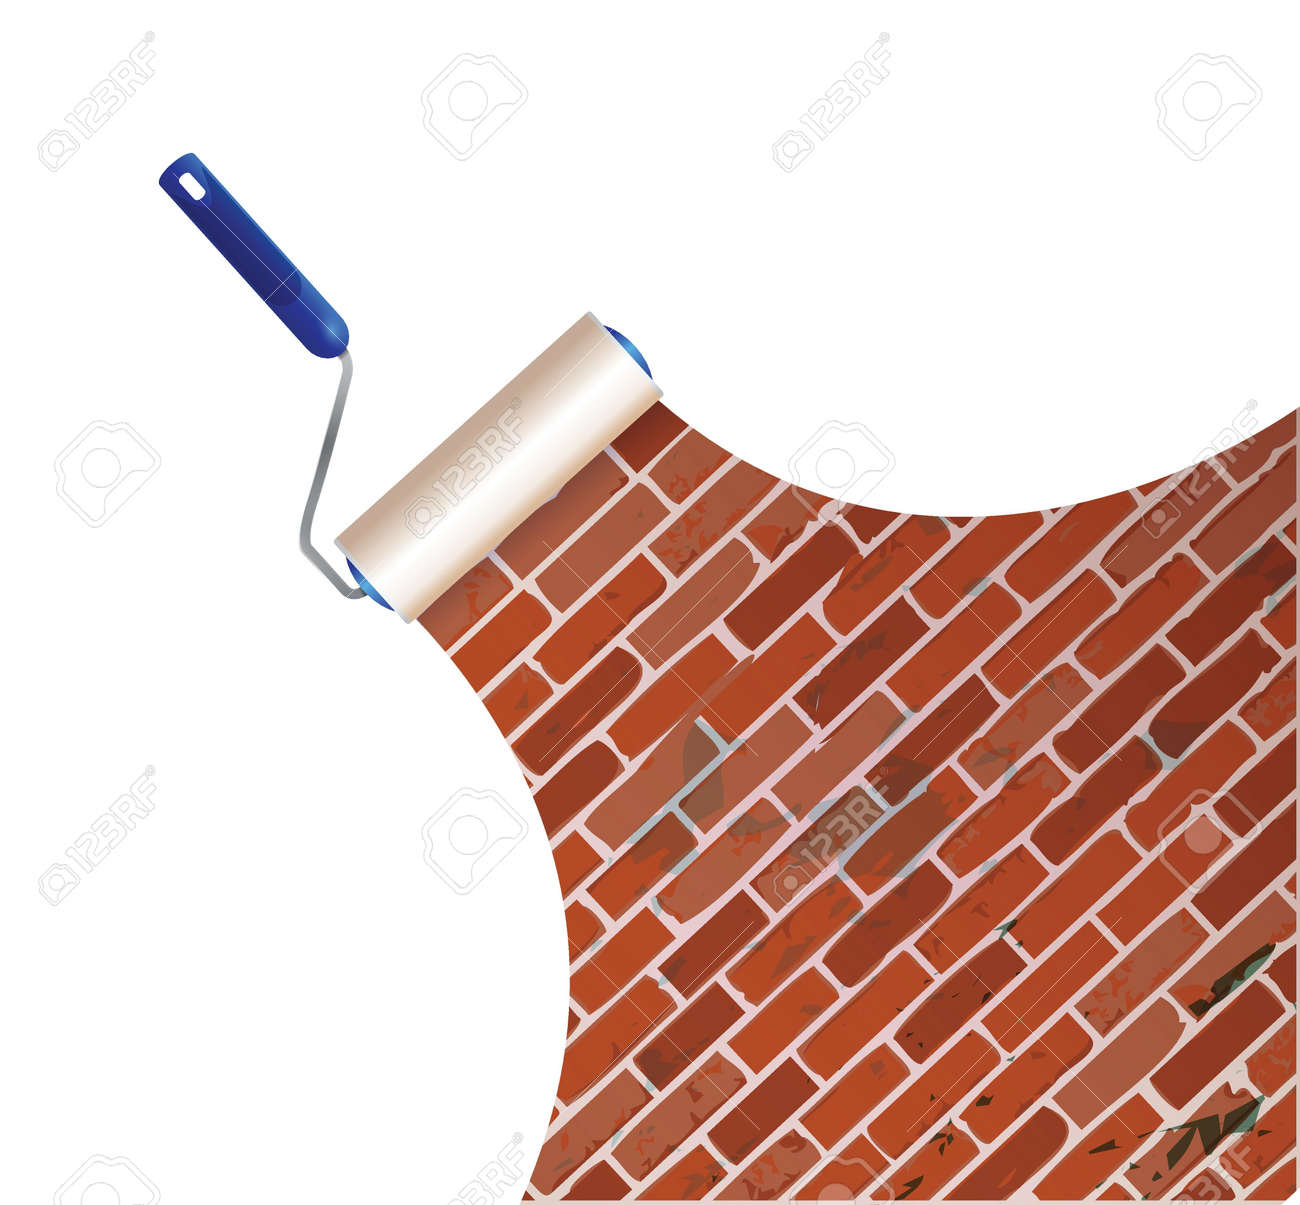 Painting A Brick Wall Illustration Design Over A White Background